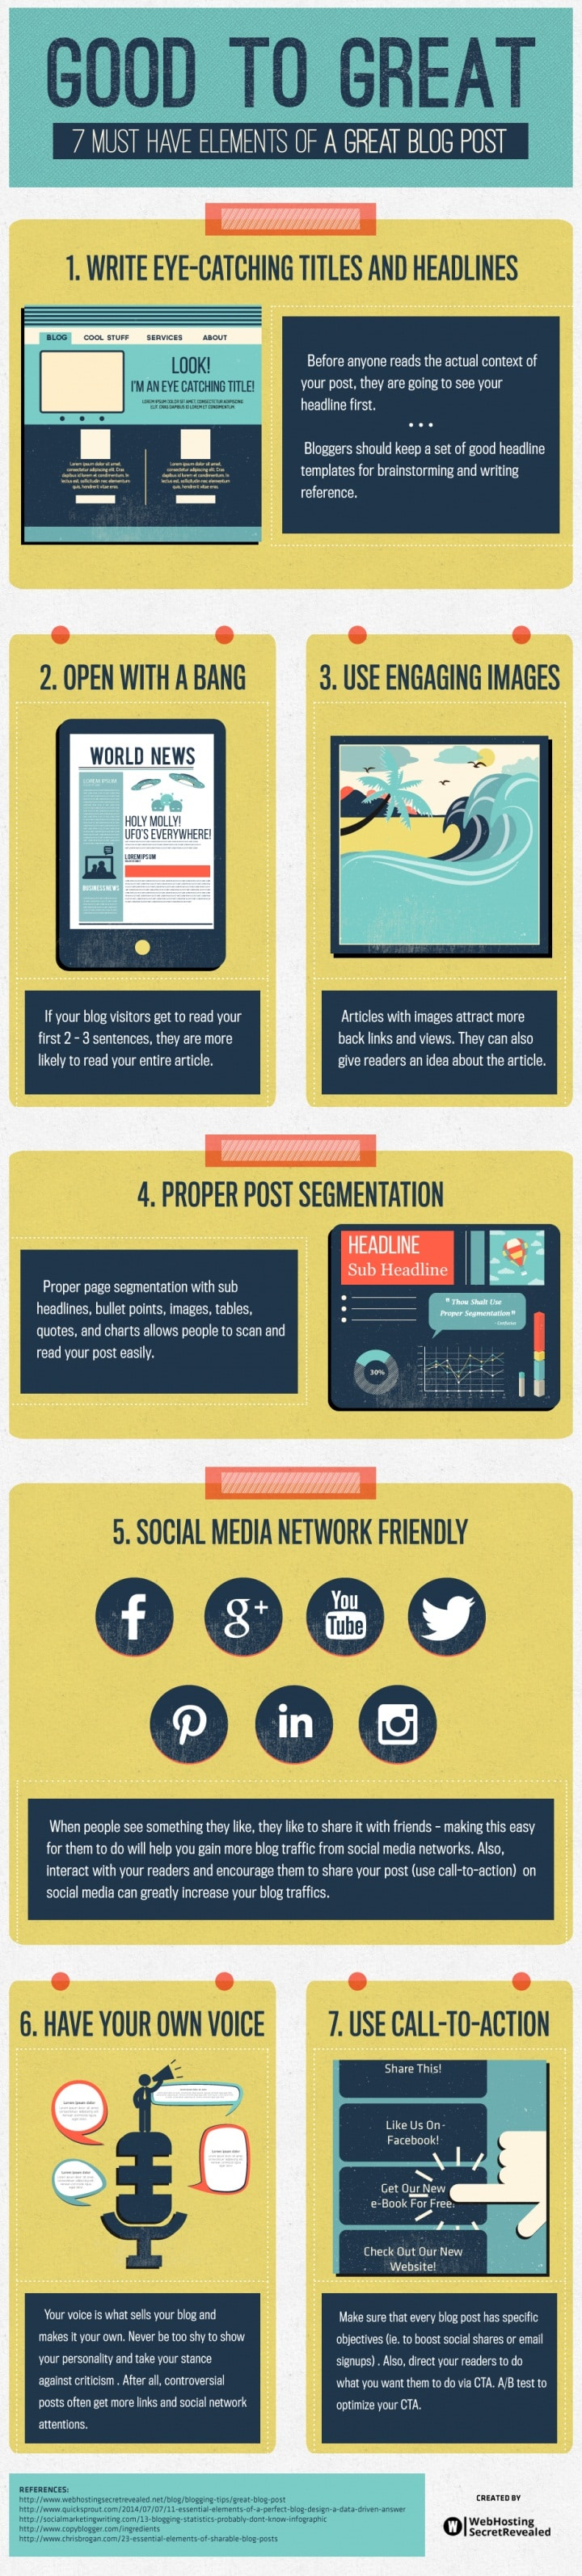 7 Must-Have Elements Of A Great Blog Post [Infographic]